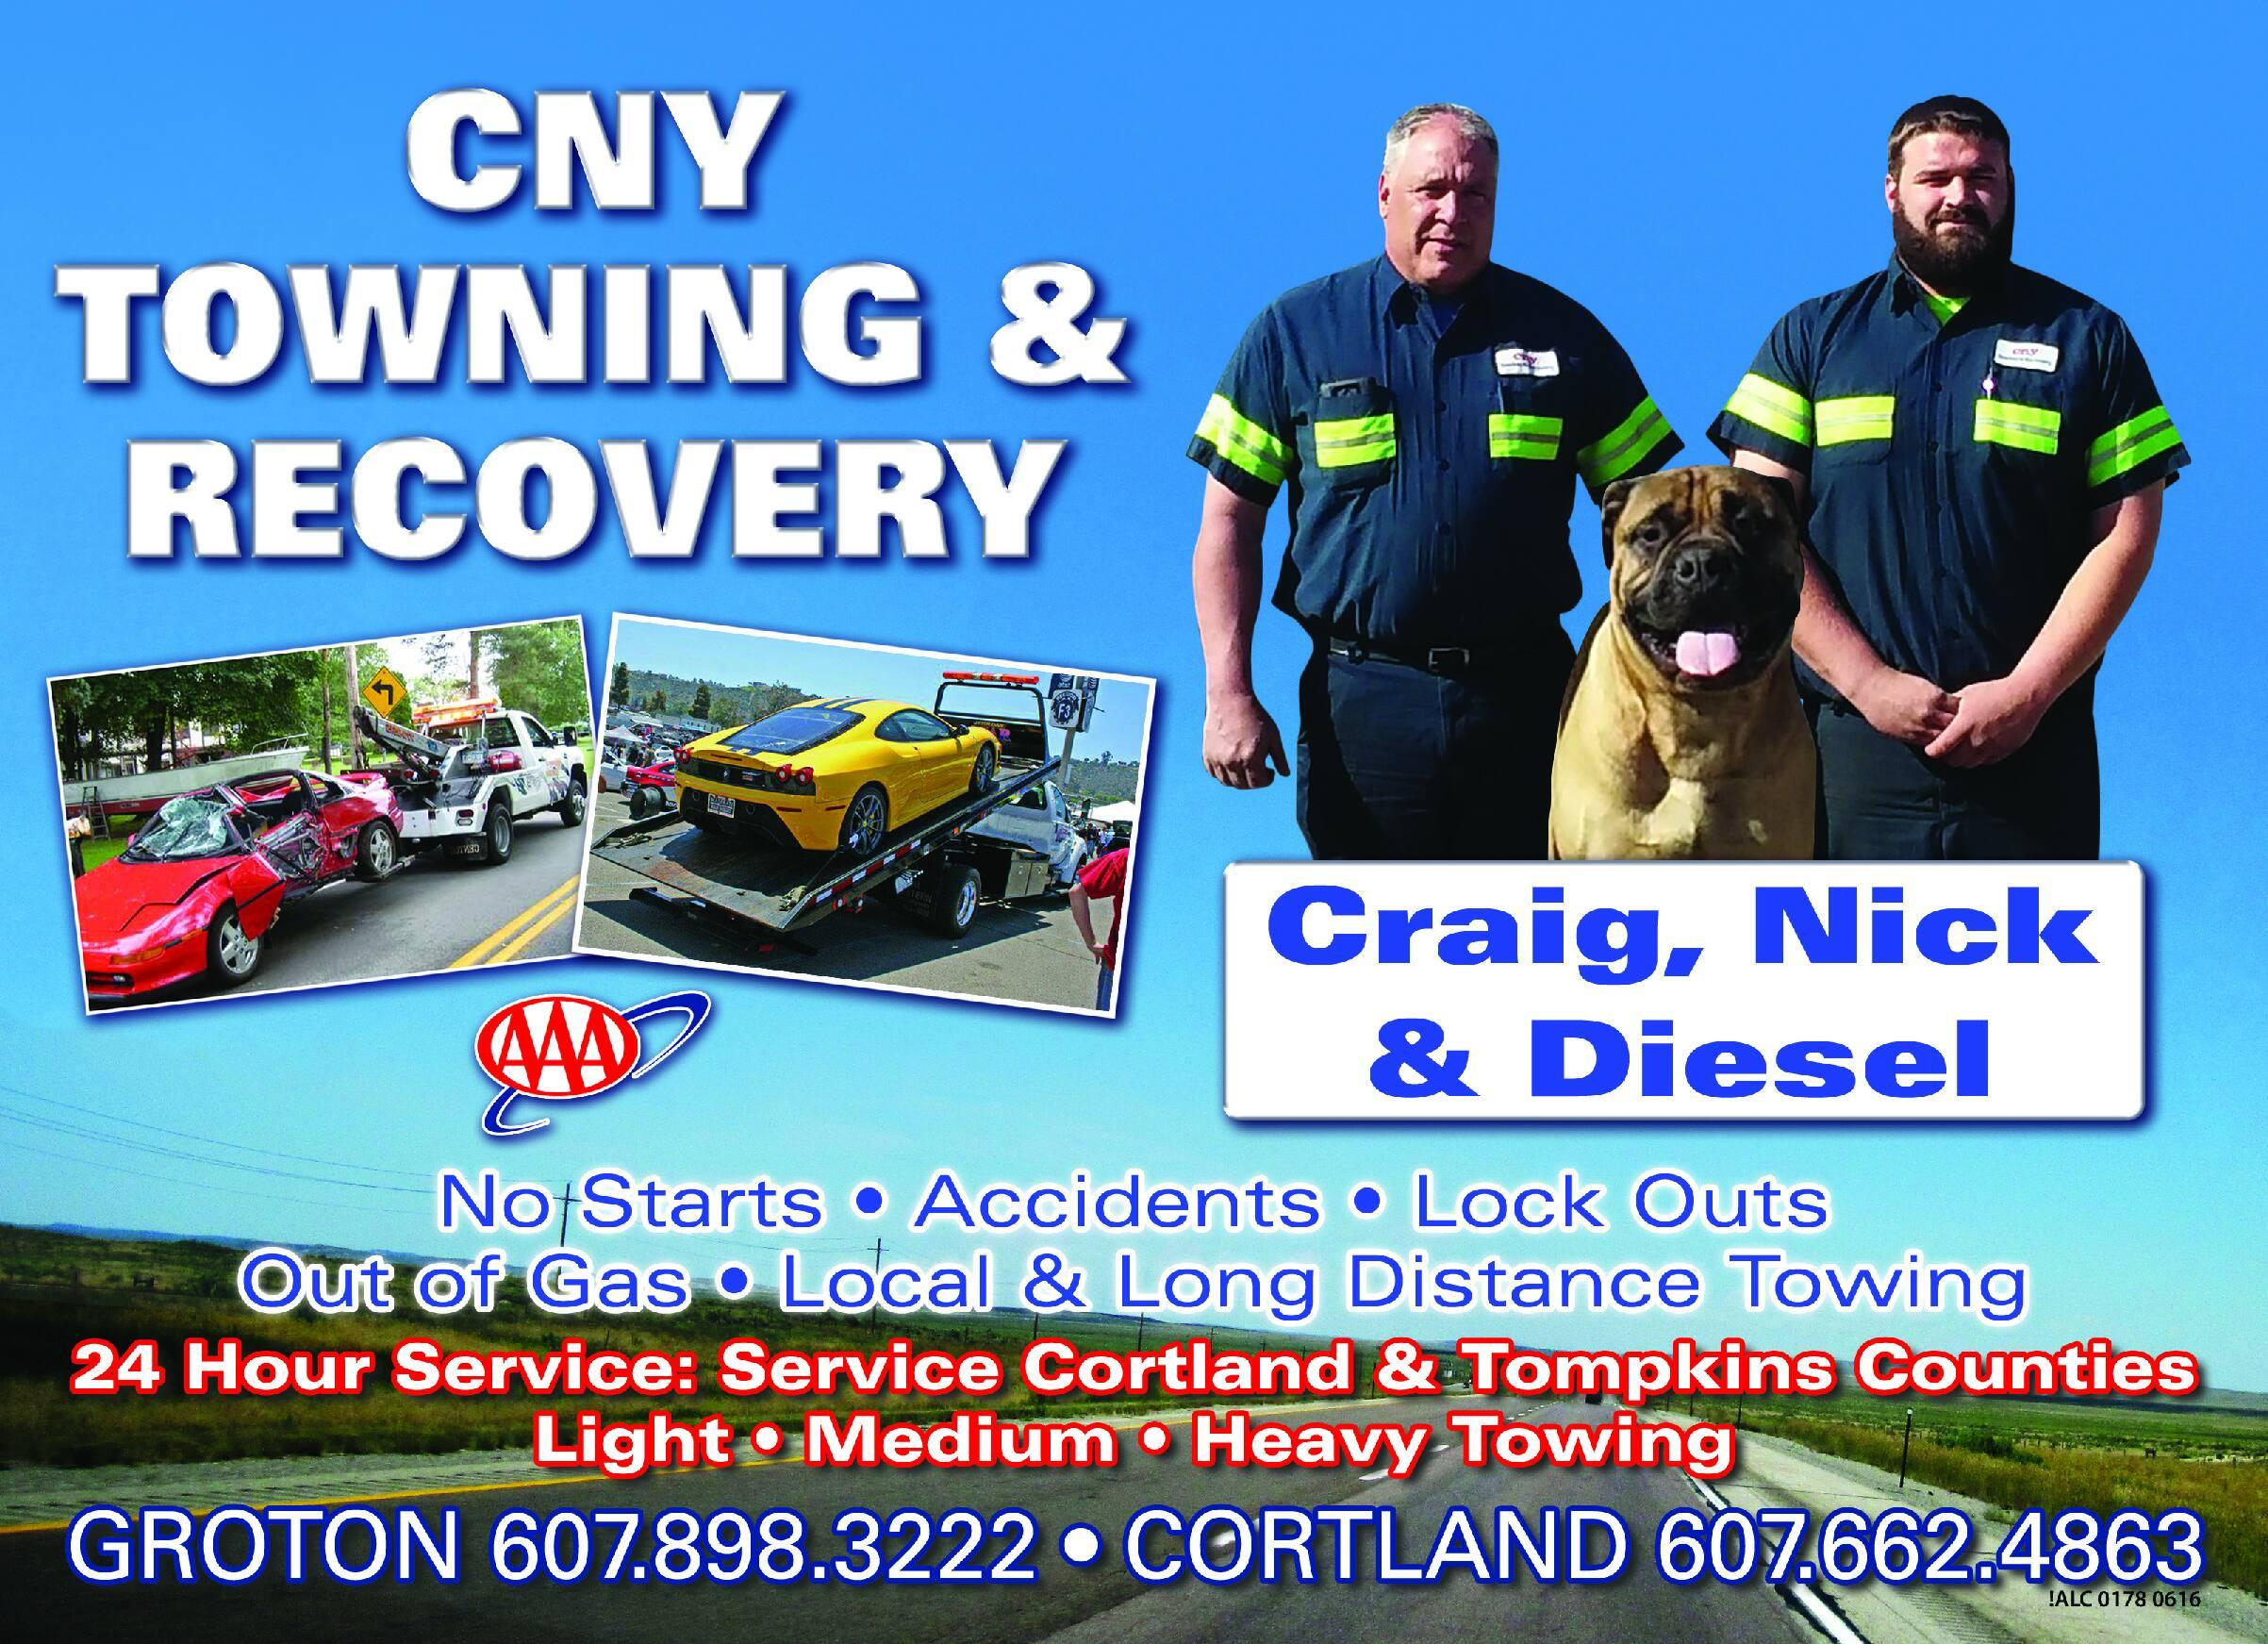 CNY Towing & Recovery image 7